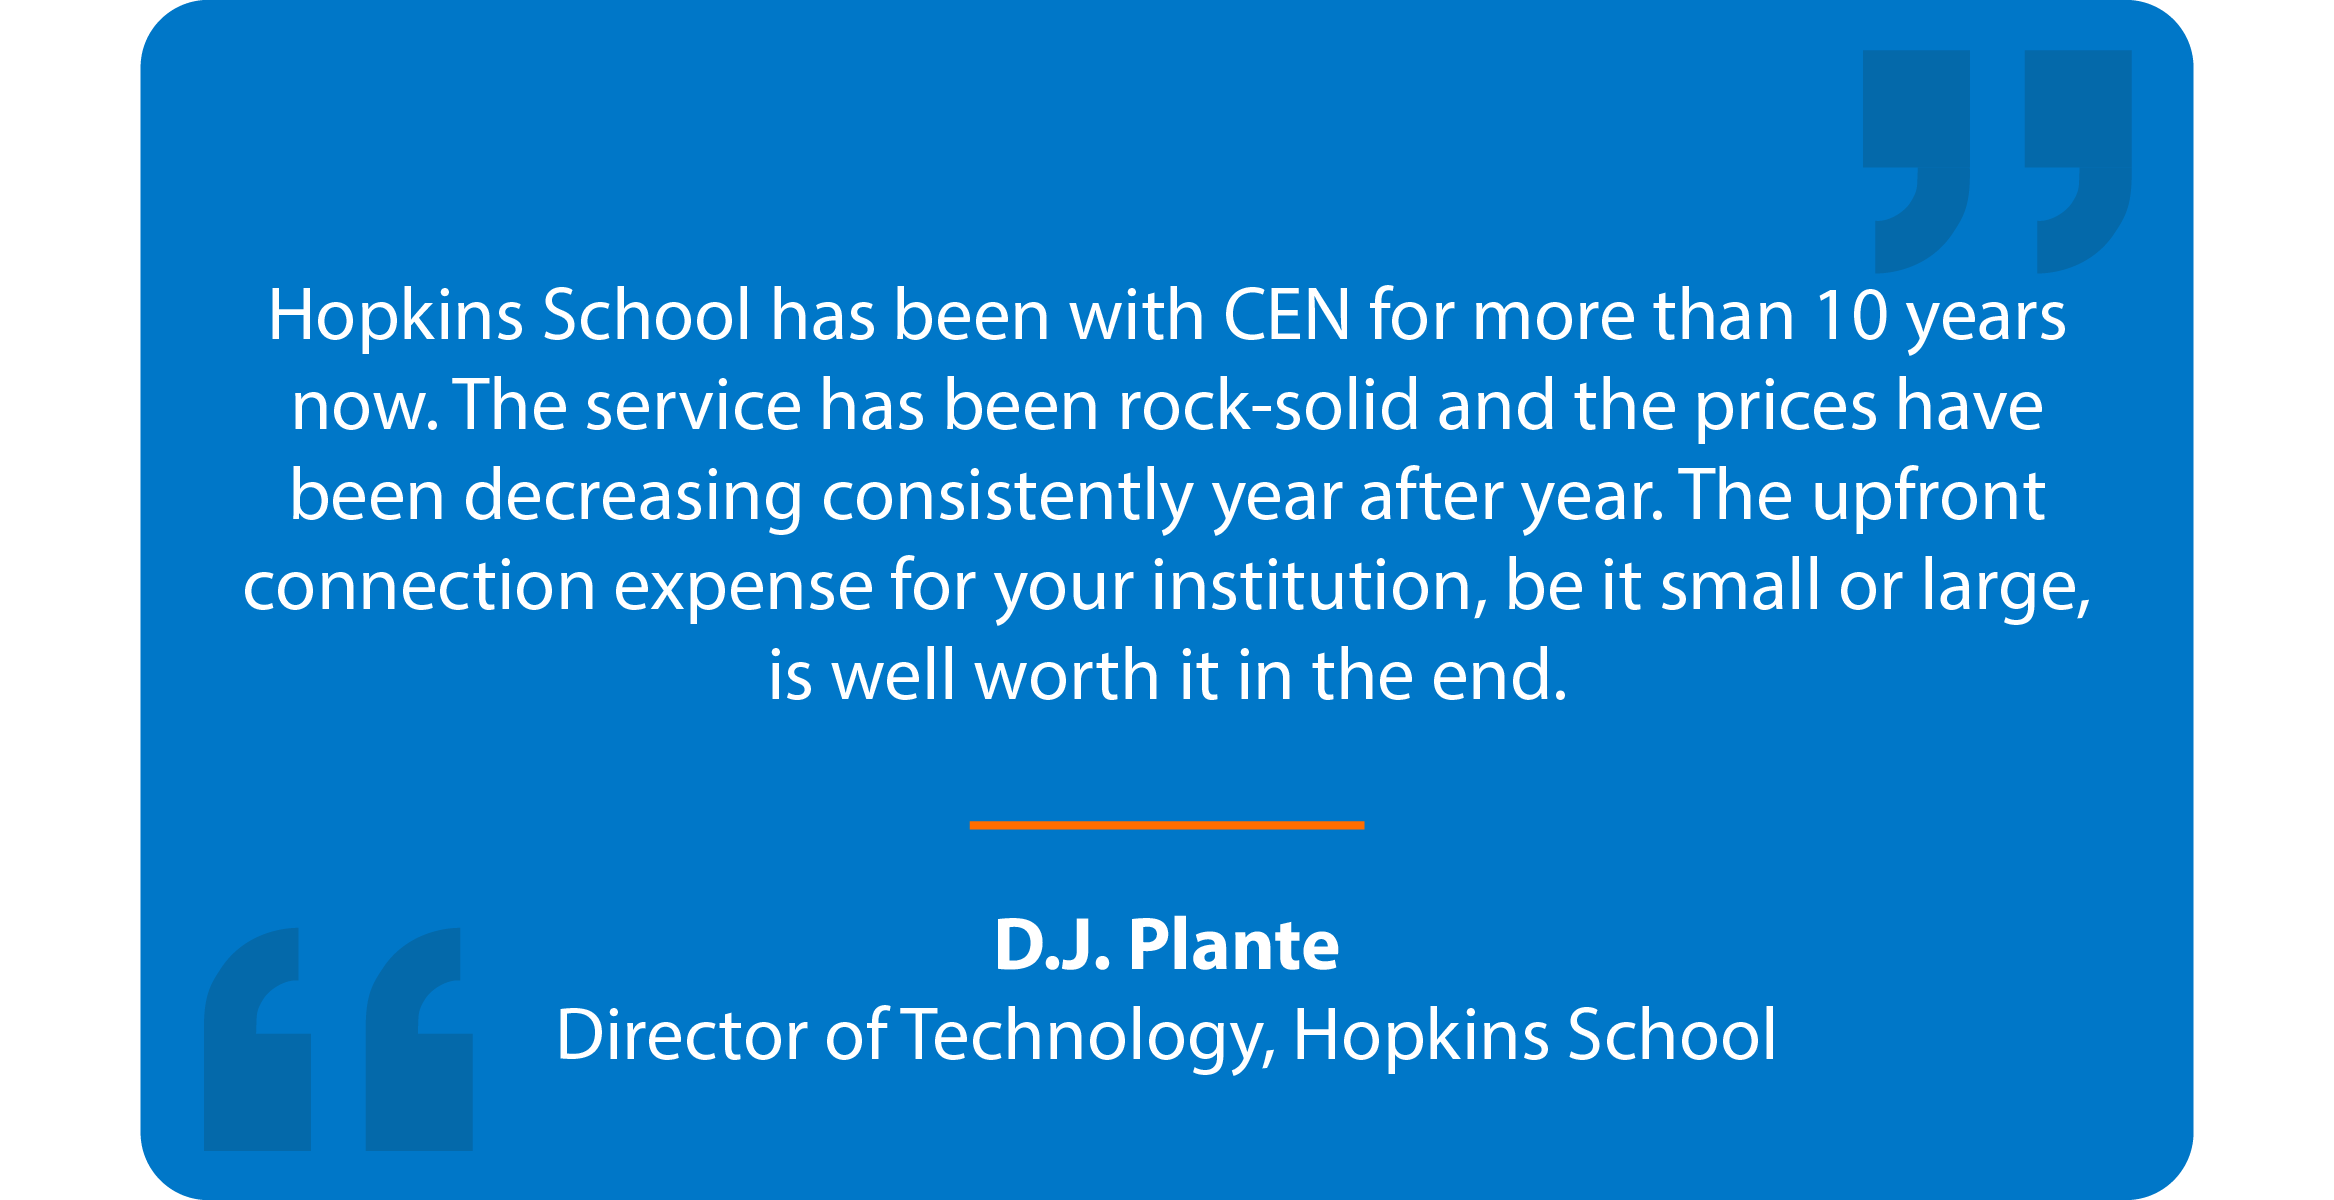 Blue box with quote that reads: Hopkins School has been with CEN for more than 10 years now. The service has been rock-solid and the prices have been decreasing consistently year after year. The upfront connection expense for your institution, be it small or large, is well worth it in the end. D.J. Plante Director of Technology, Hopkins School